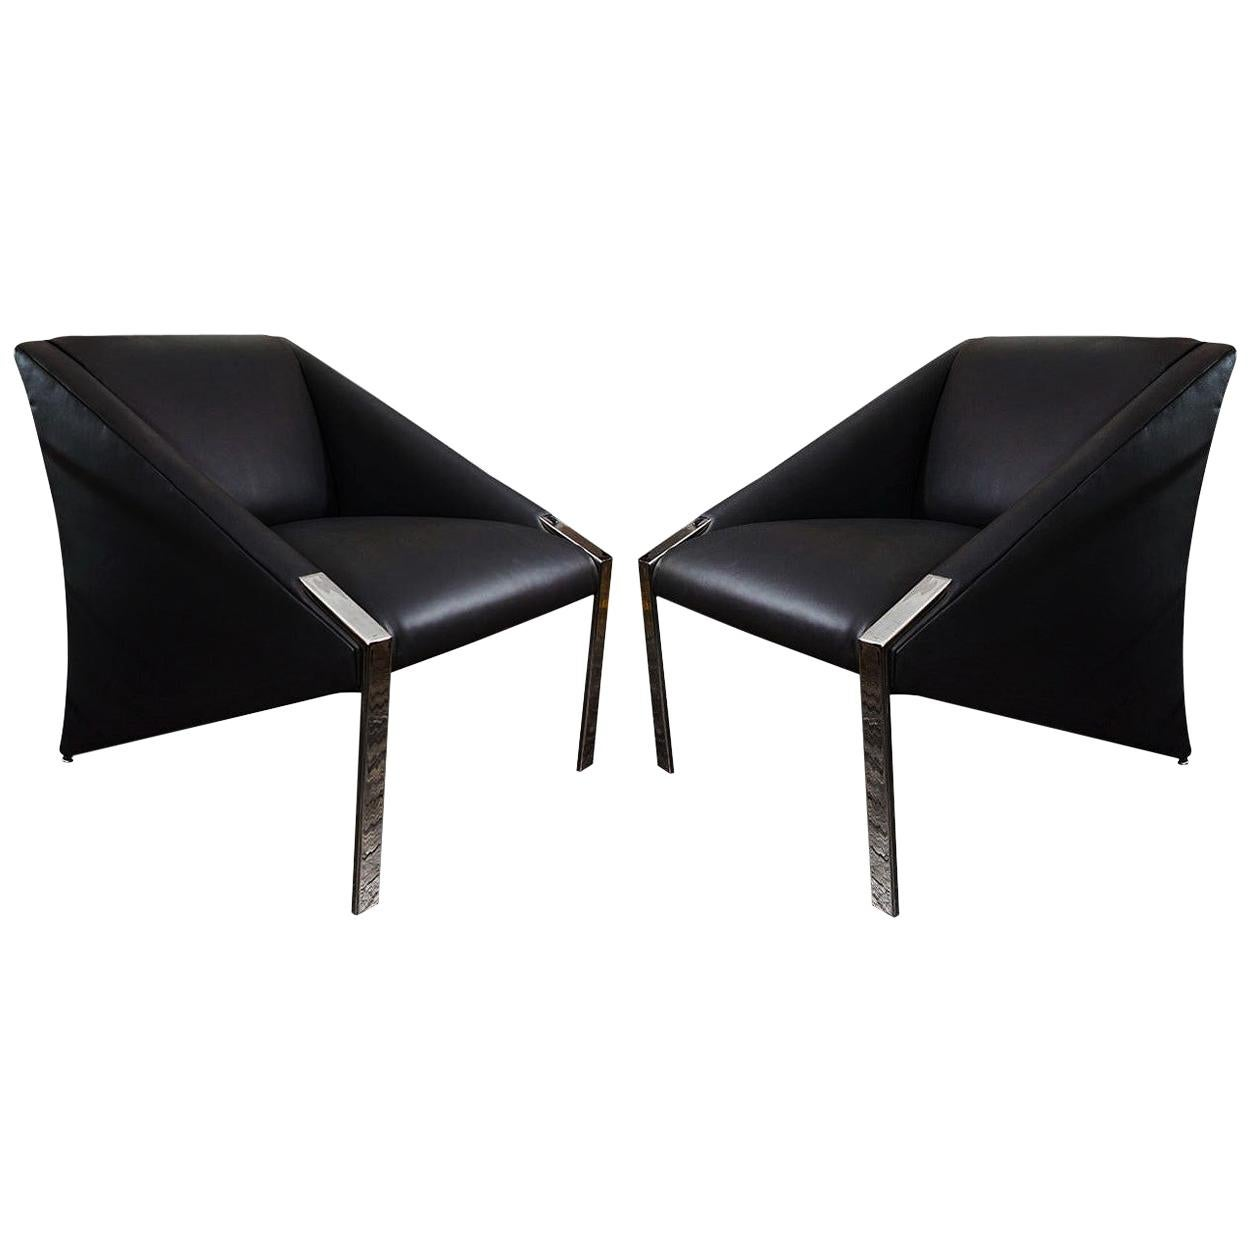 Fine Pair of Andrée Putman Club Chairs in Black